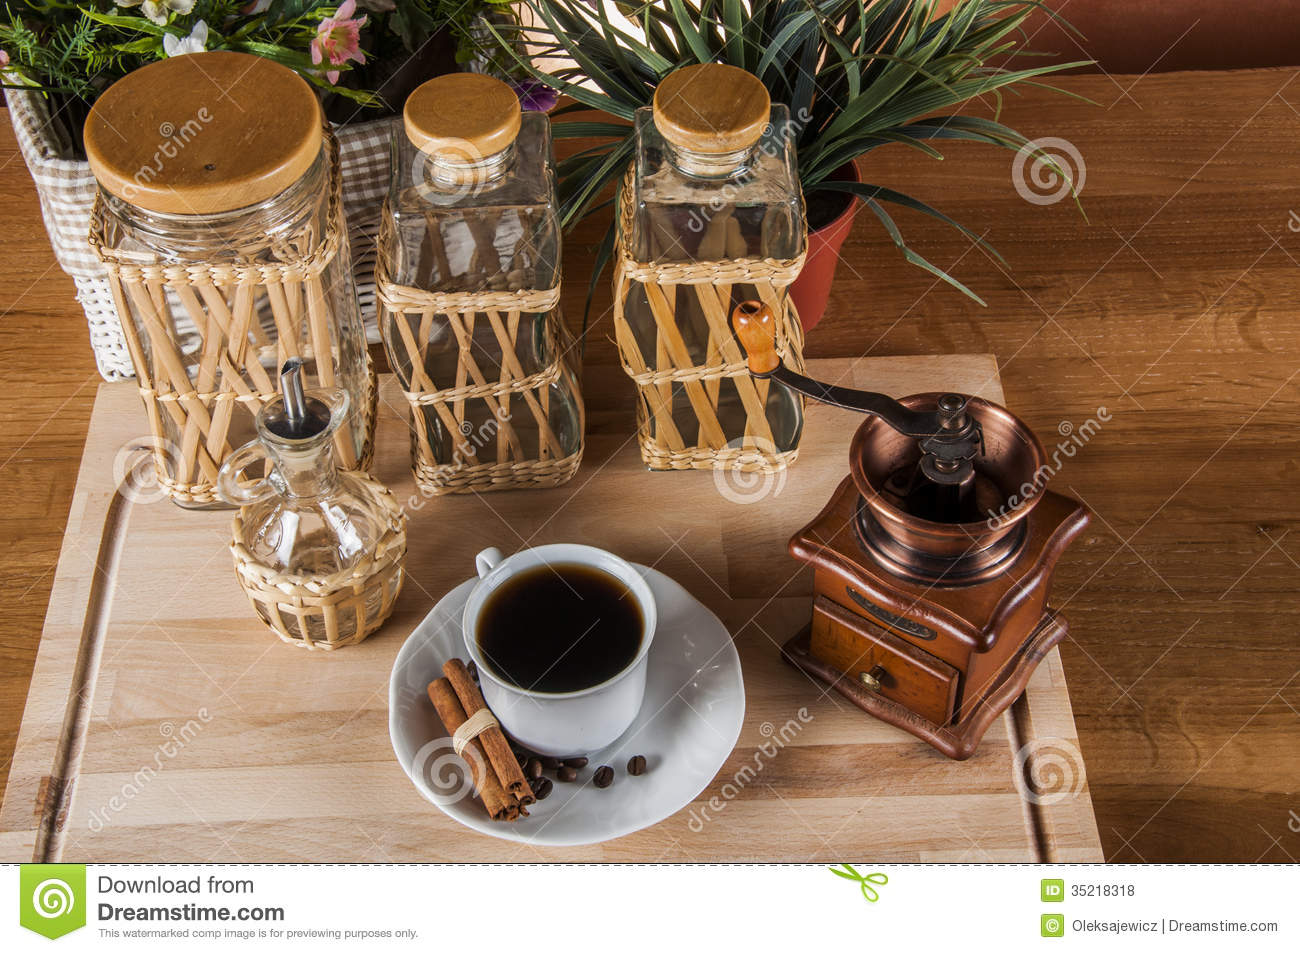 Free Illustrations Country Kitchen Coffee On The Table